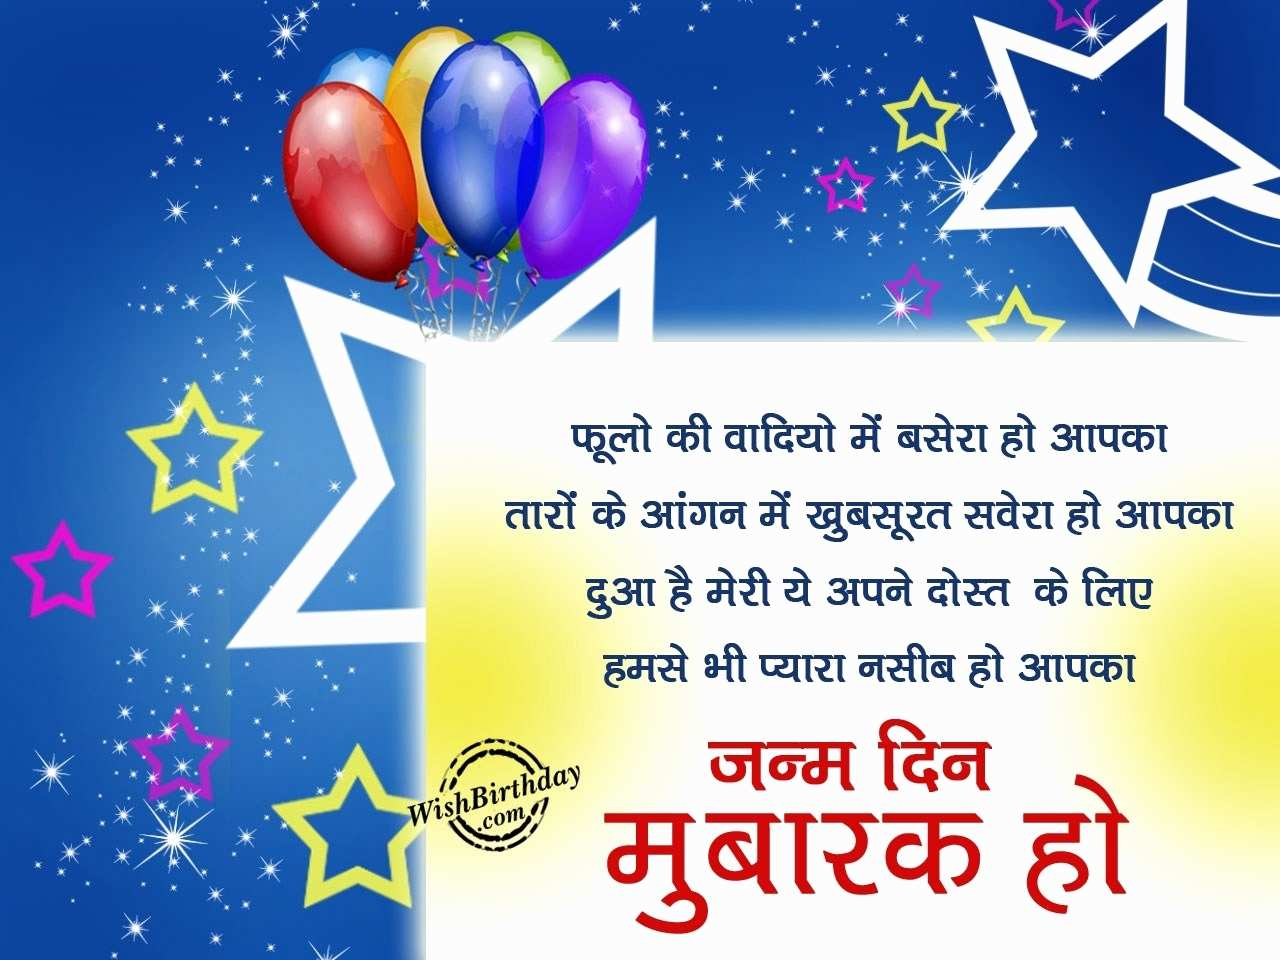 birthday message for best friend in hindi ; birthday-wishes-for-father-in-law-awesome-happy-birthday-wishes-to-best-friend-in-hindi-lovely-60-best-of-birthday-wishes-for-father-in-law